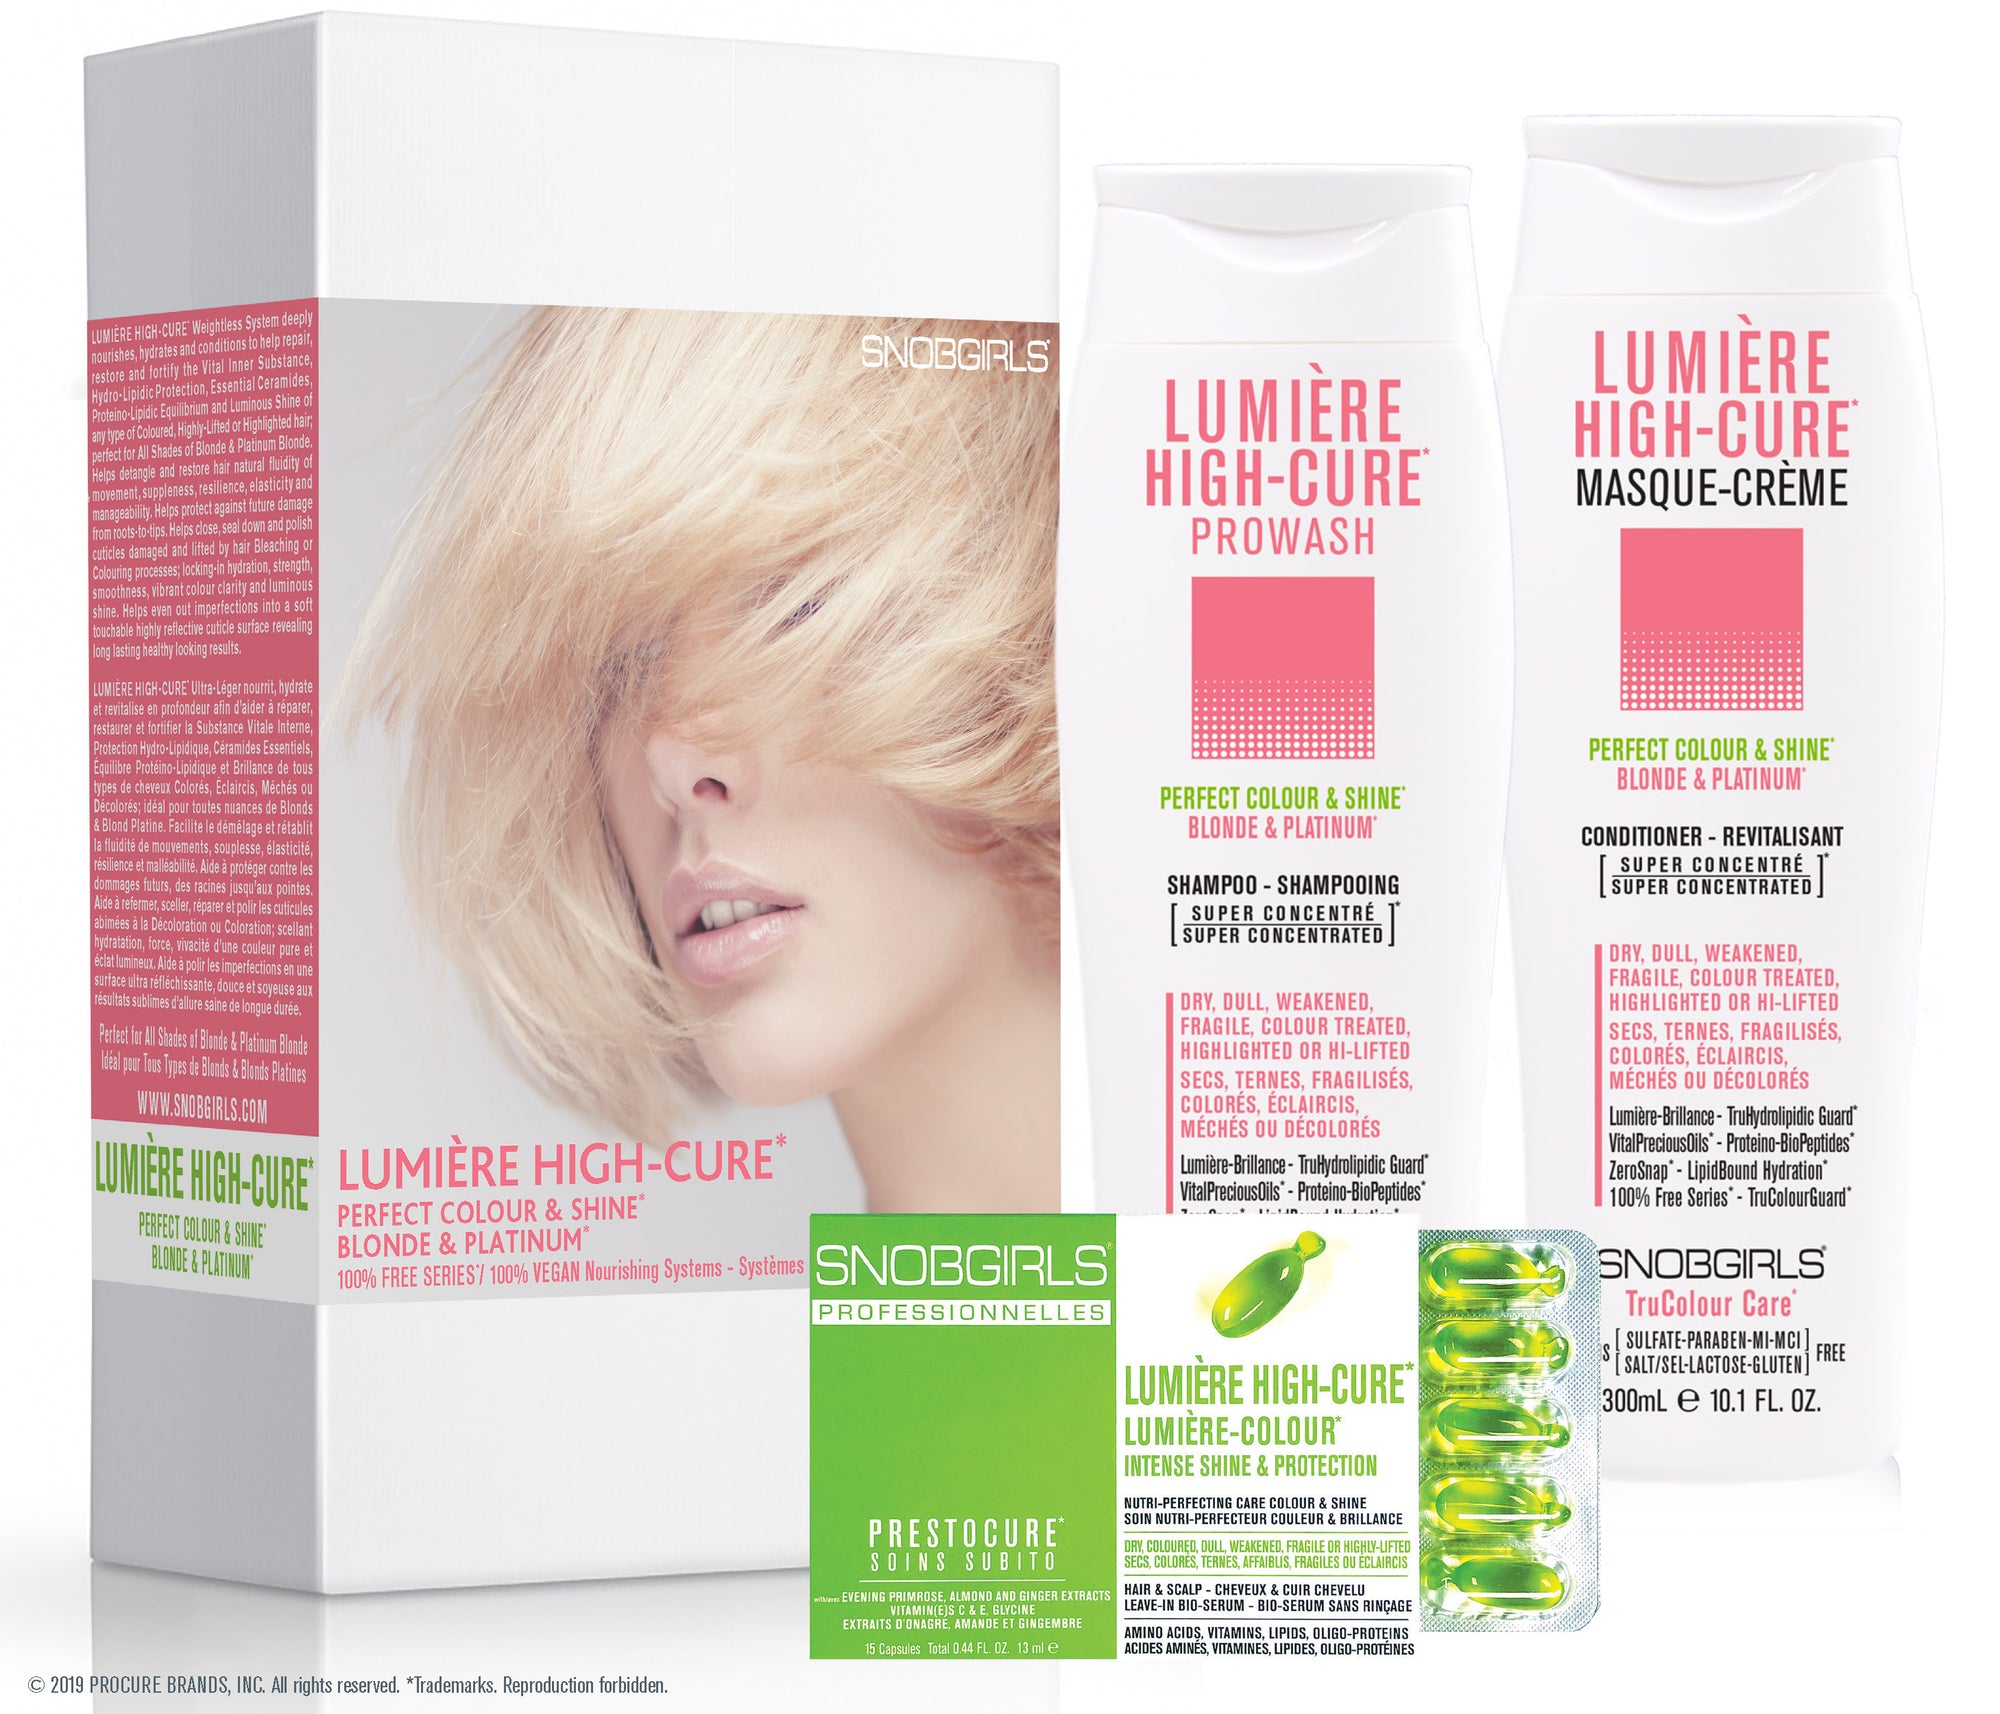 Trio LUMIERE HIGH-CURE Perfect Colour & Shine - SNOBGIRLS.com